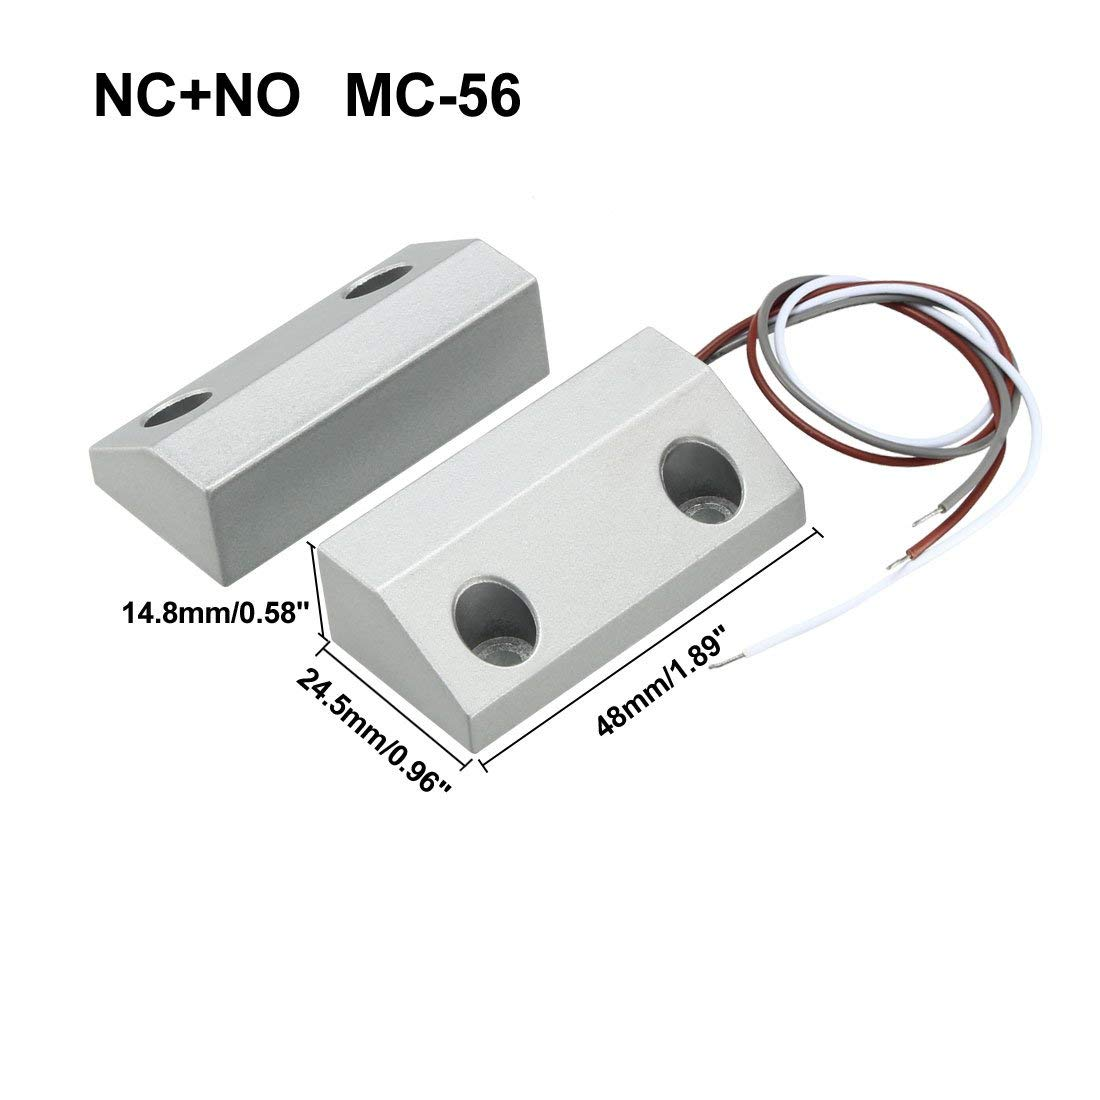 DealMux MC-56 NC+NO Alarm Security Rolling Gate Garage Door Contact Magnetic Reed Switch Silver Gray